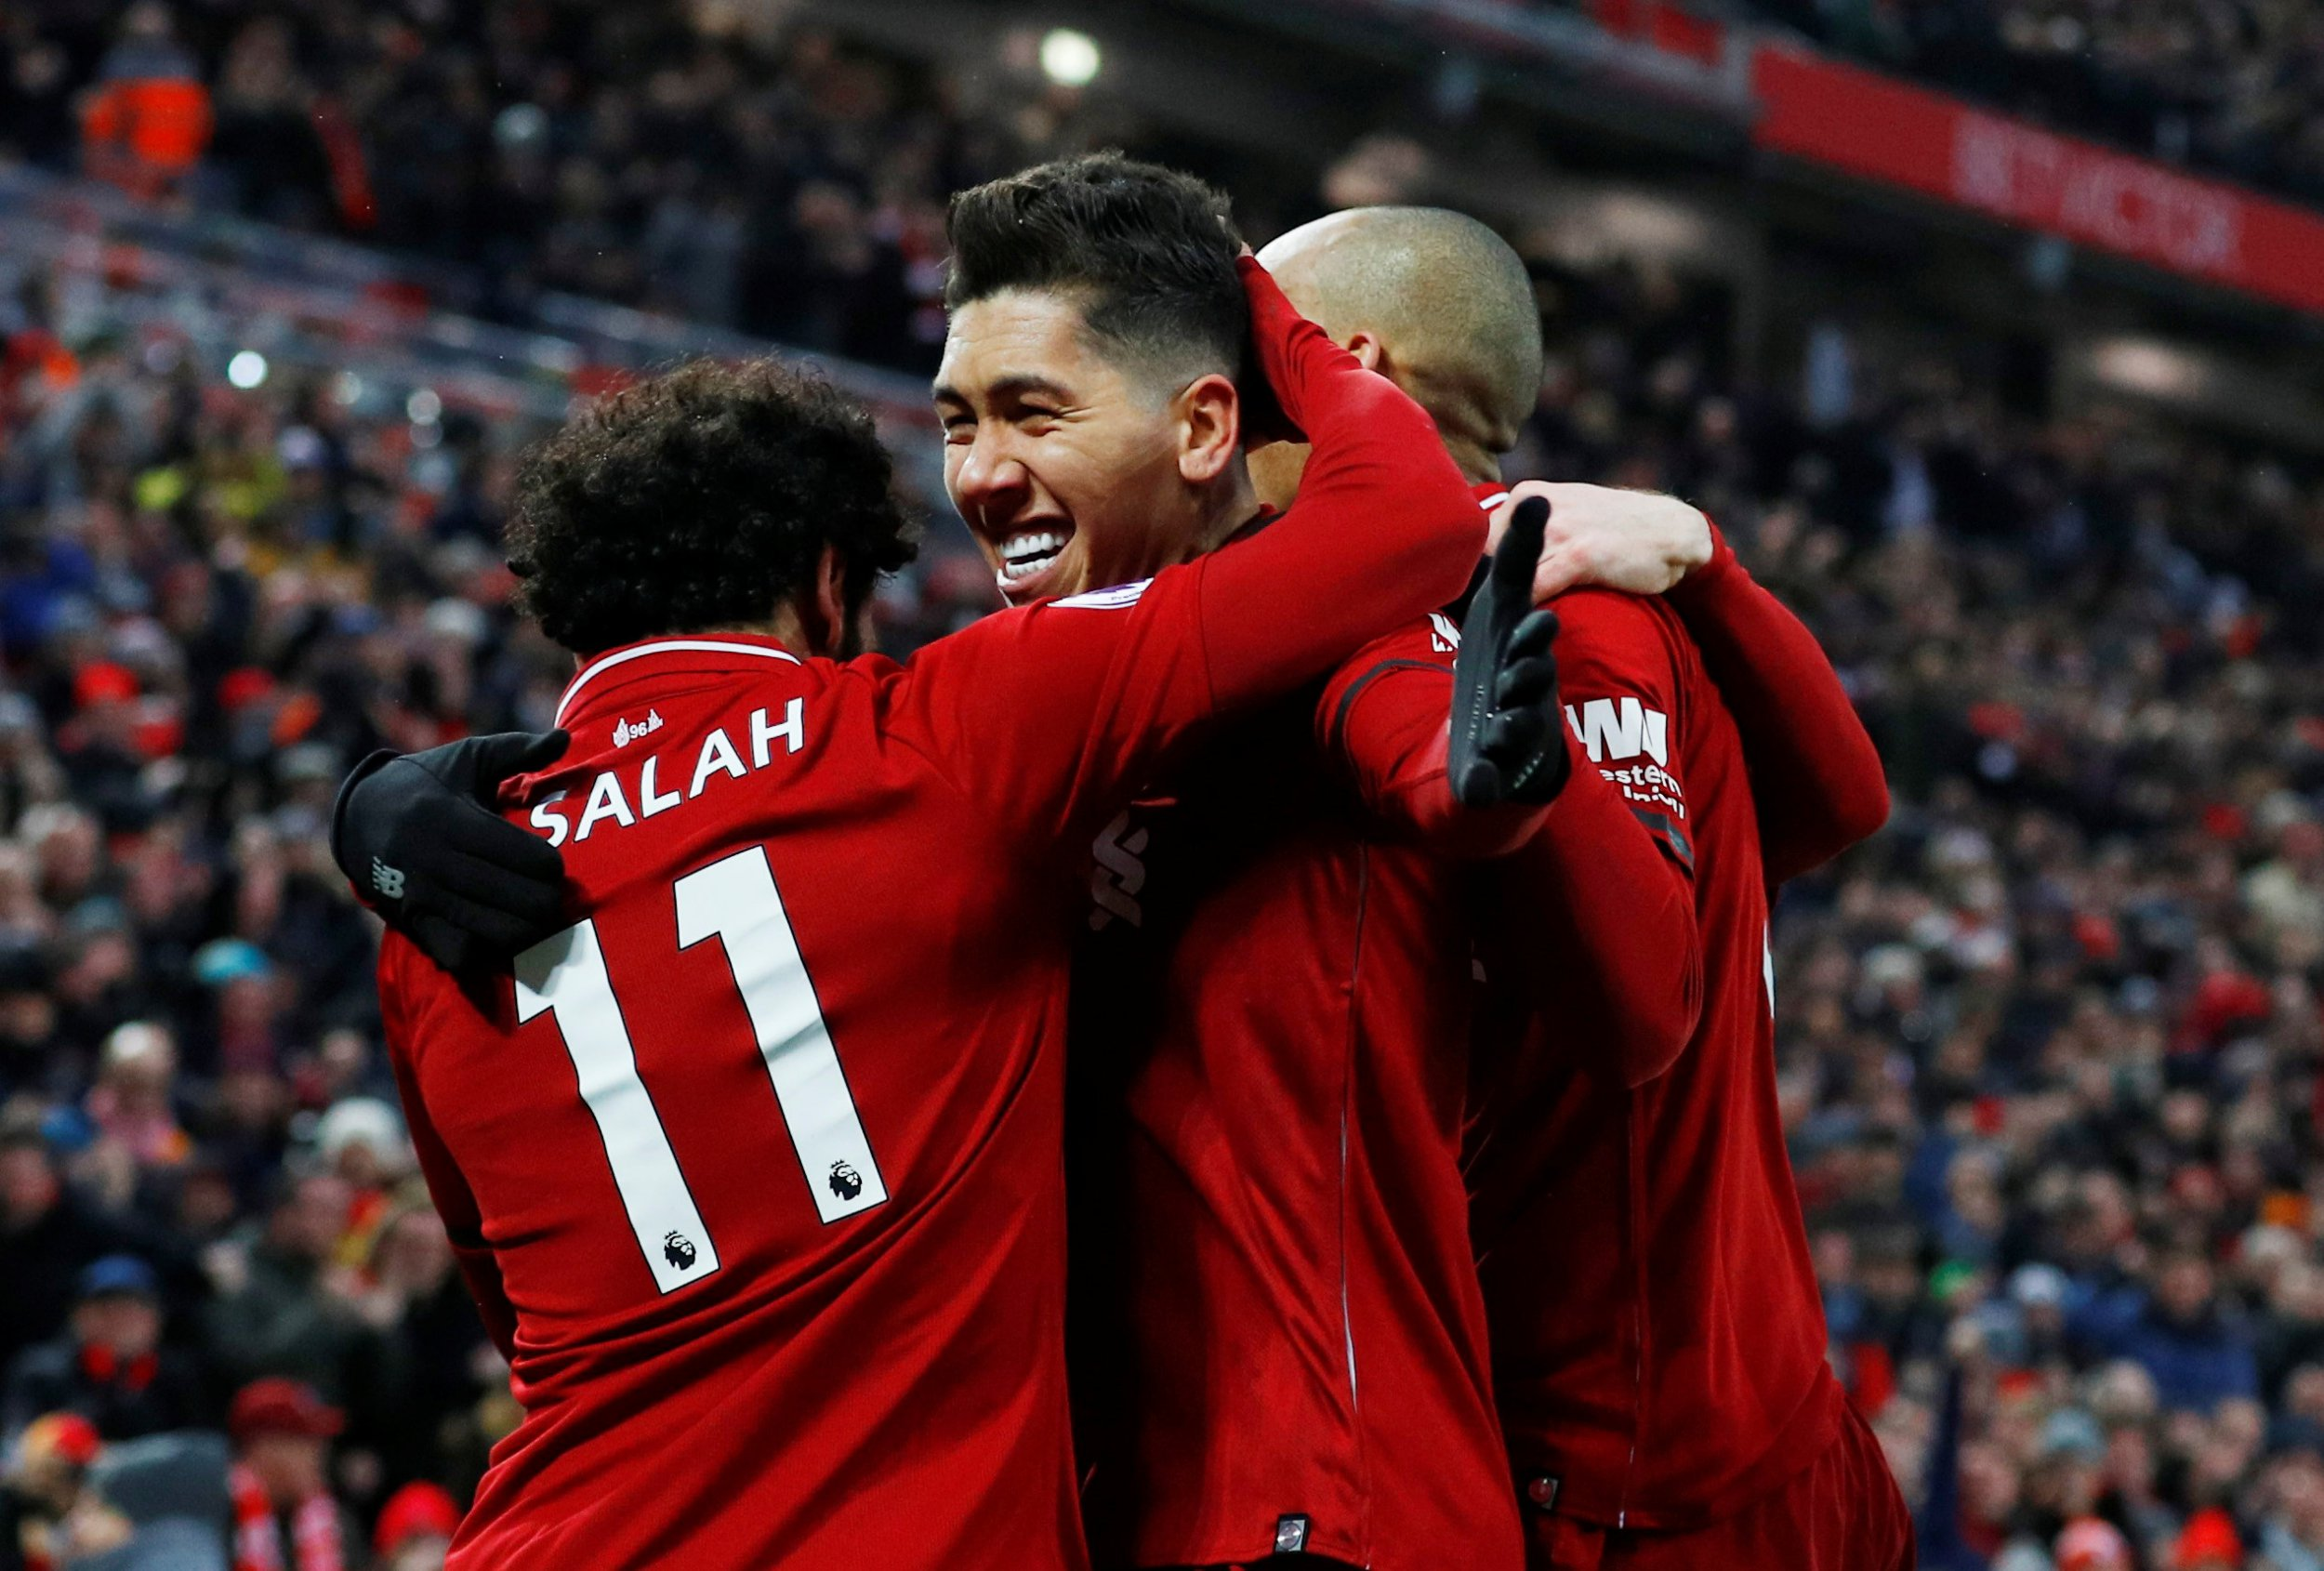 Mohamed Salah reveals details of half-time team talk which inspired Liverpool's win against Crystal Palace